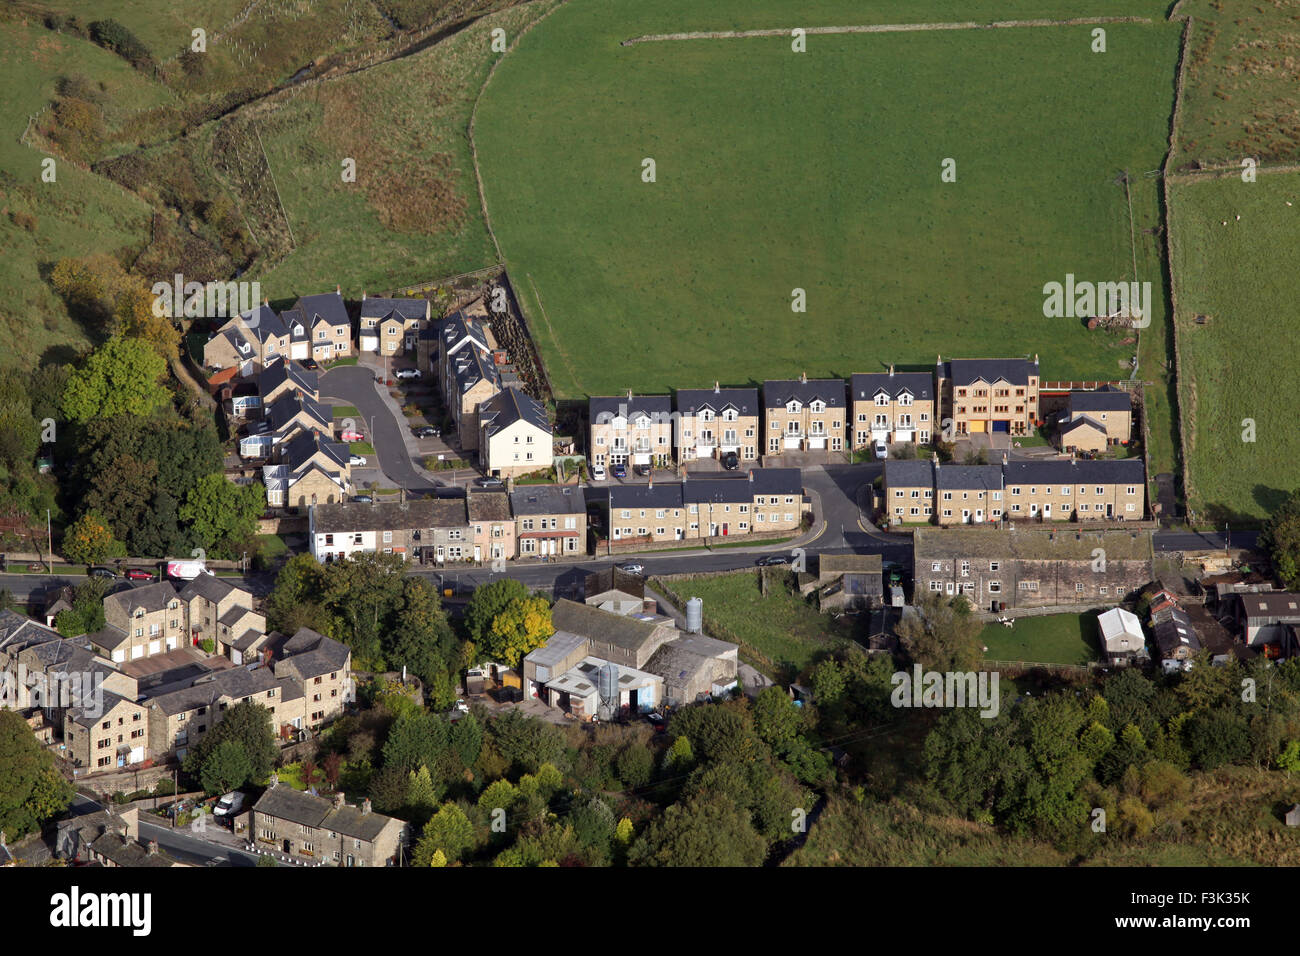 aerial view of new rural affordable housing in a Yorkshire village, UK - Stock Image